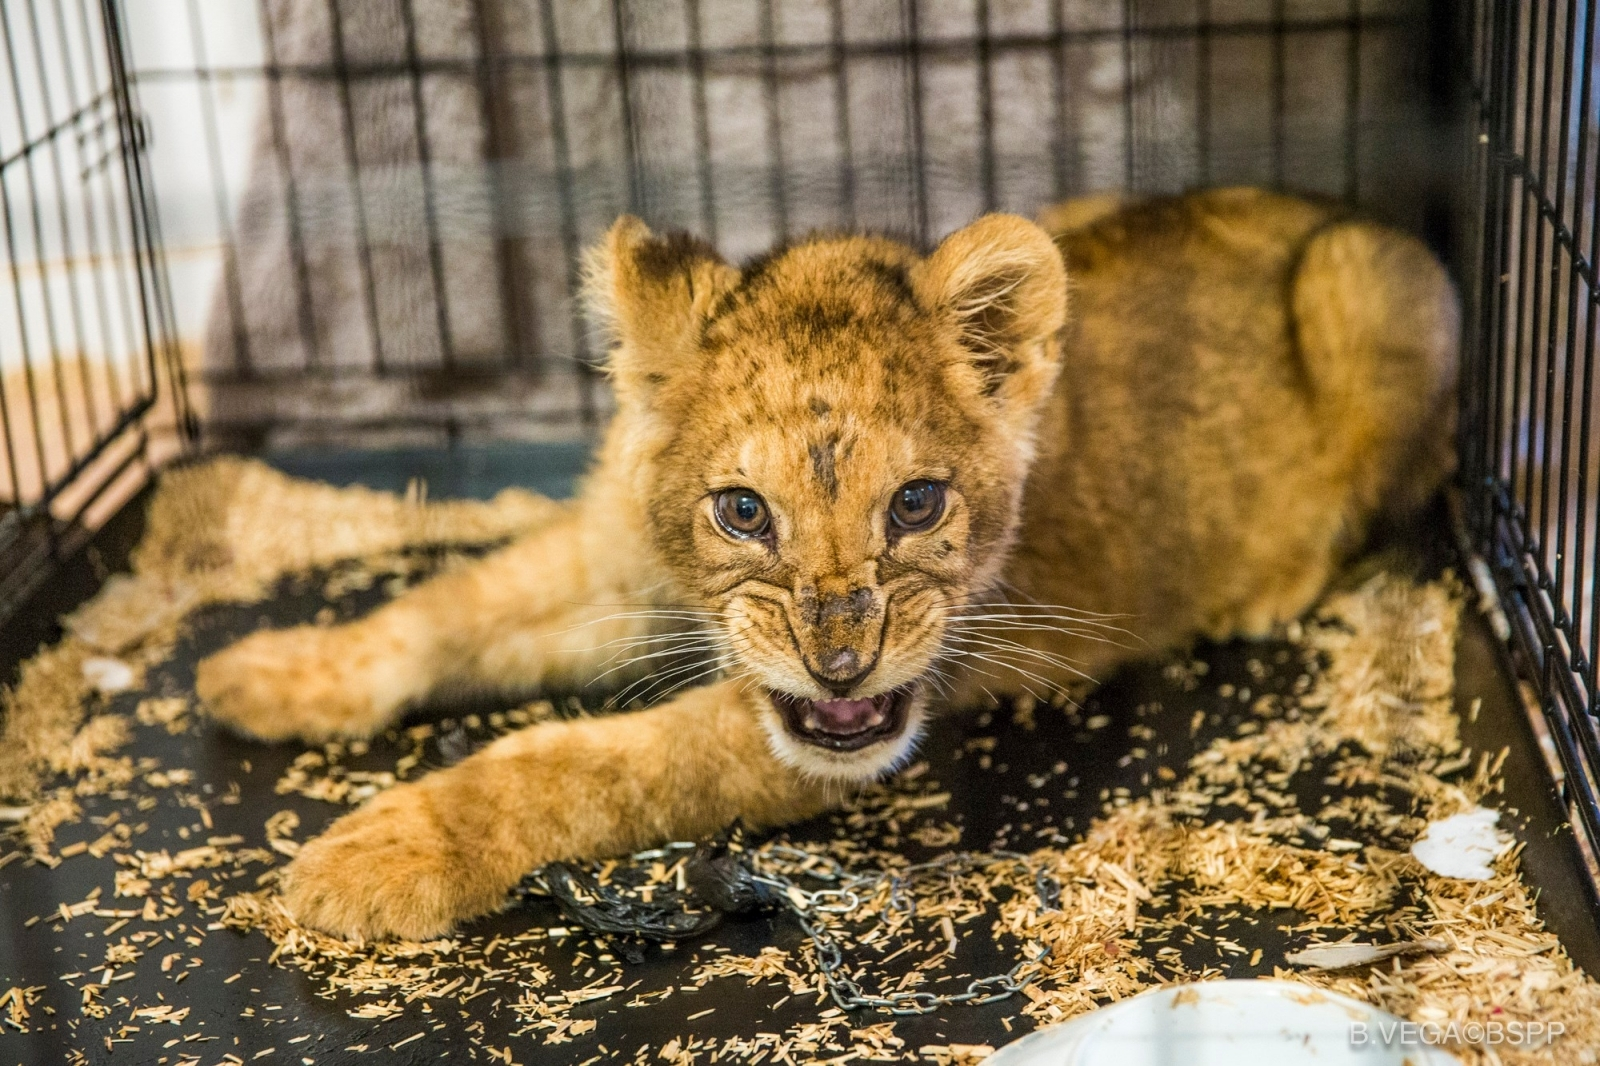 This abandoned lion cub was found in an empty Paris apartment